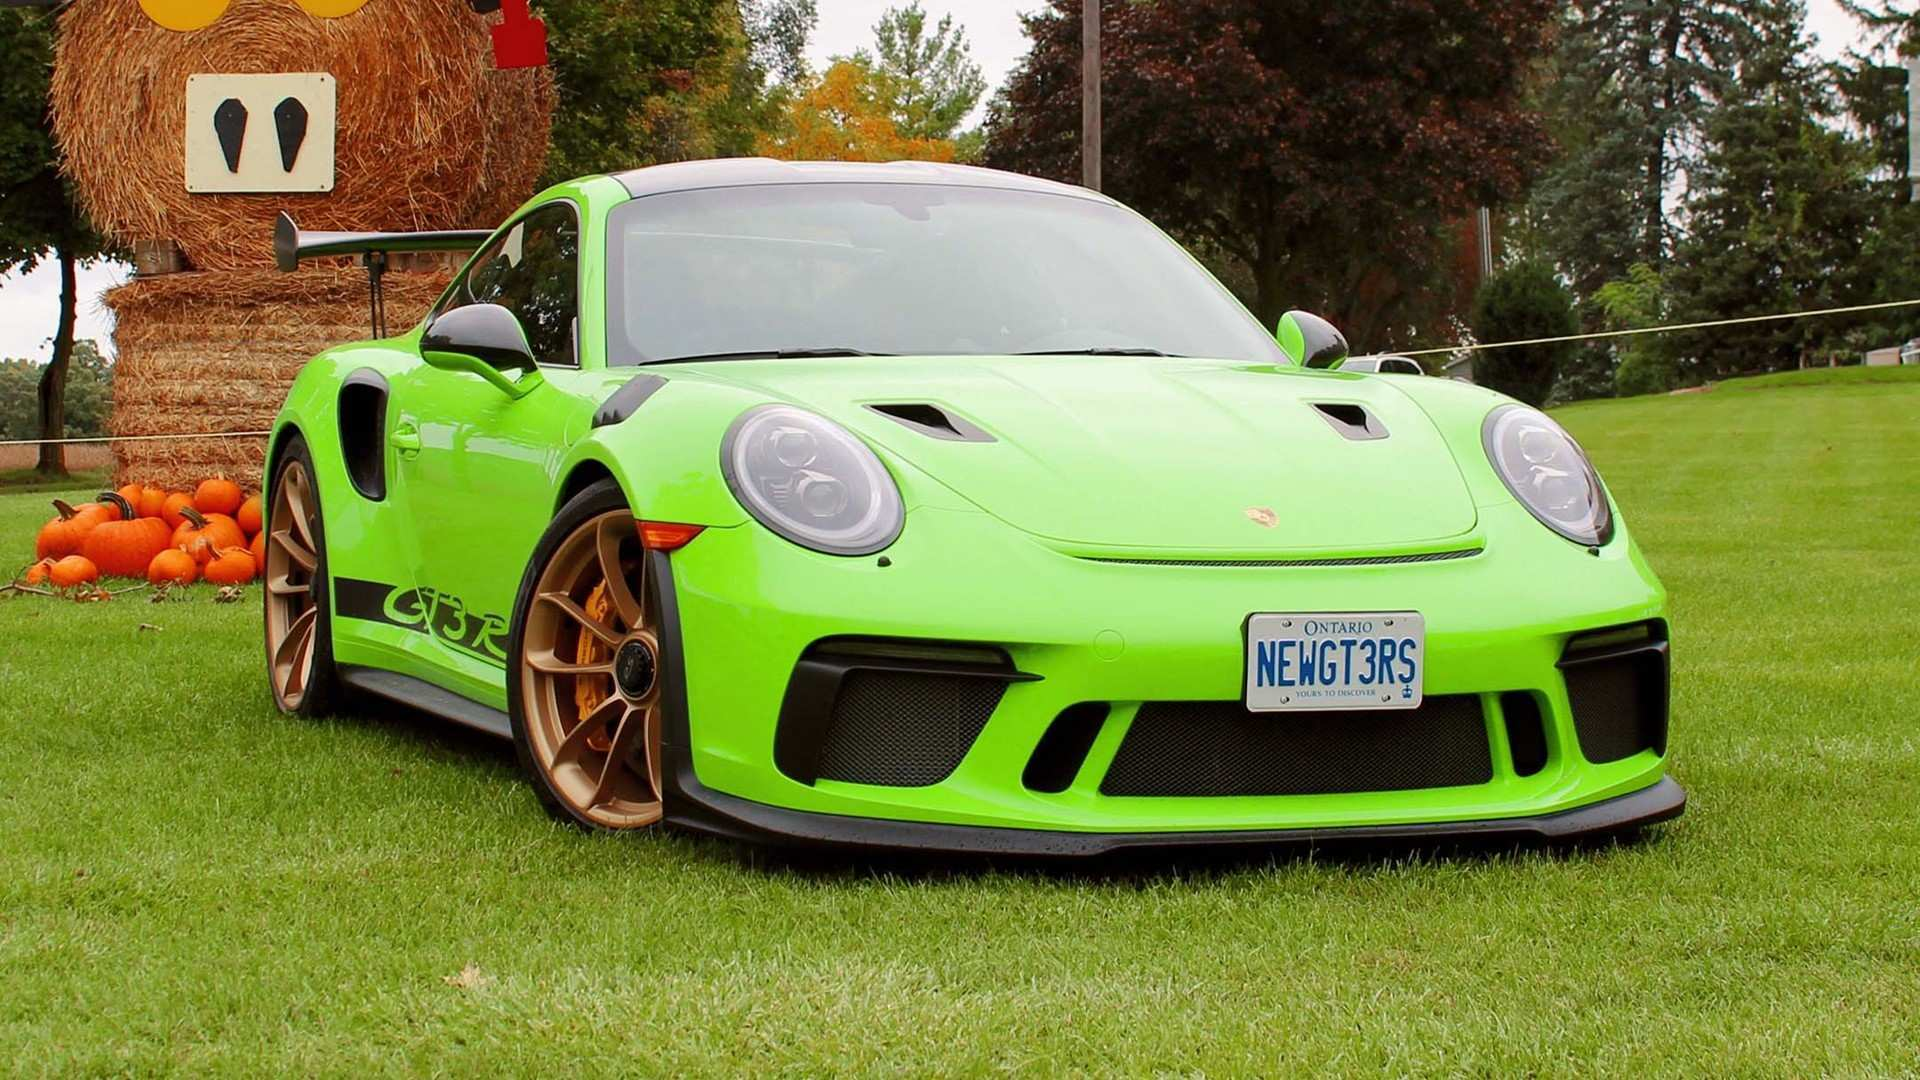 30 All New 2019 Porsche Gt3 Rs Specs and Review with 2019 Porsche Gt3 Rs